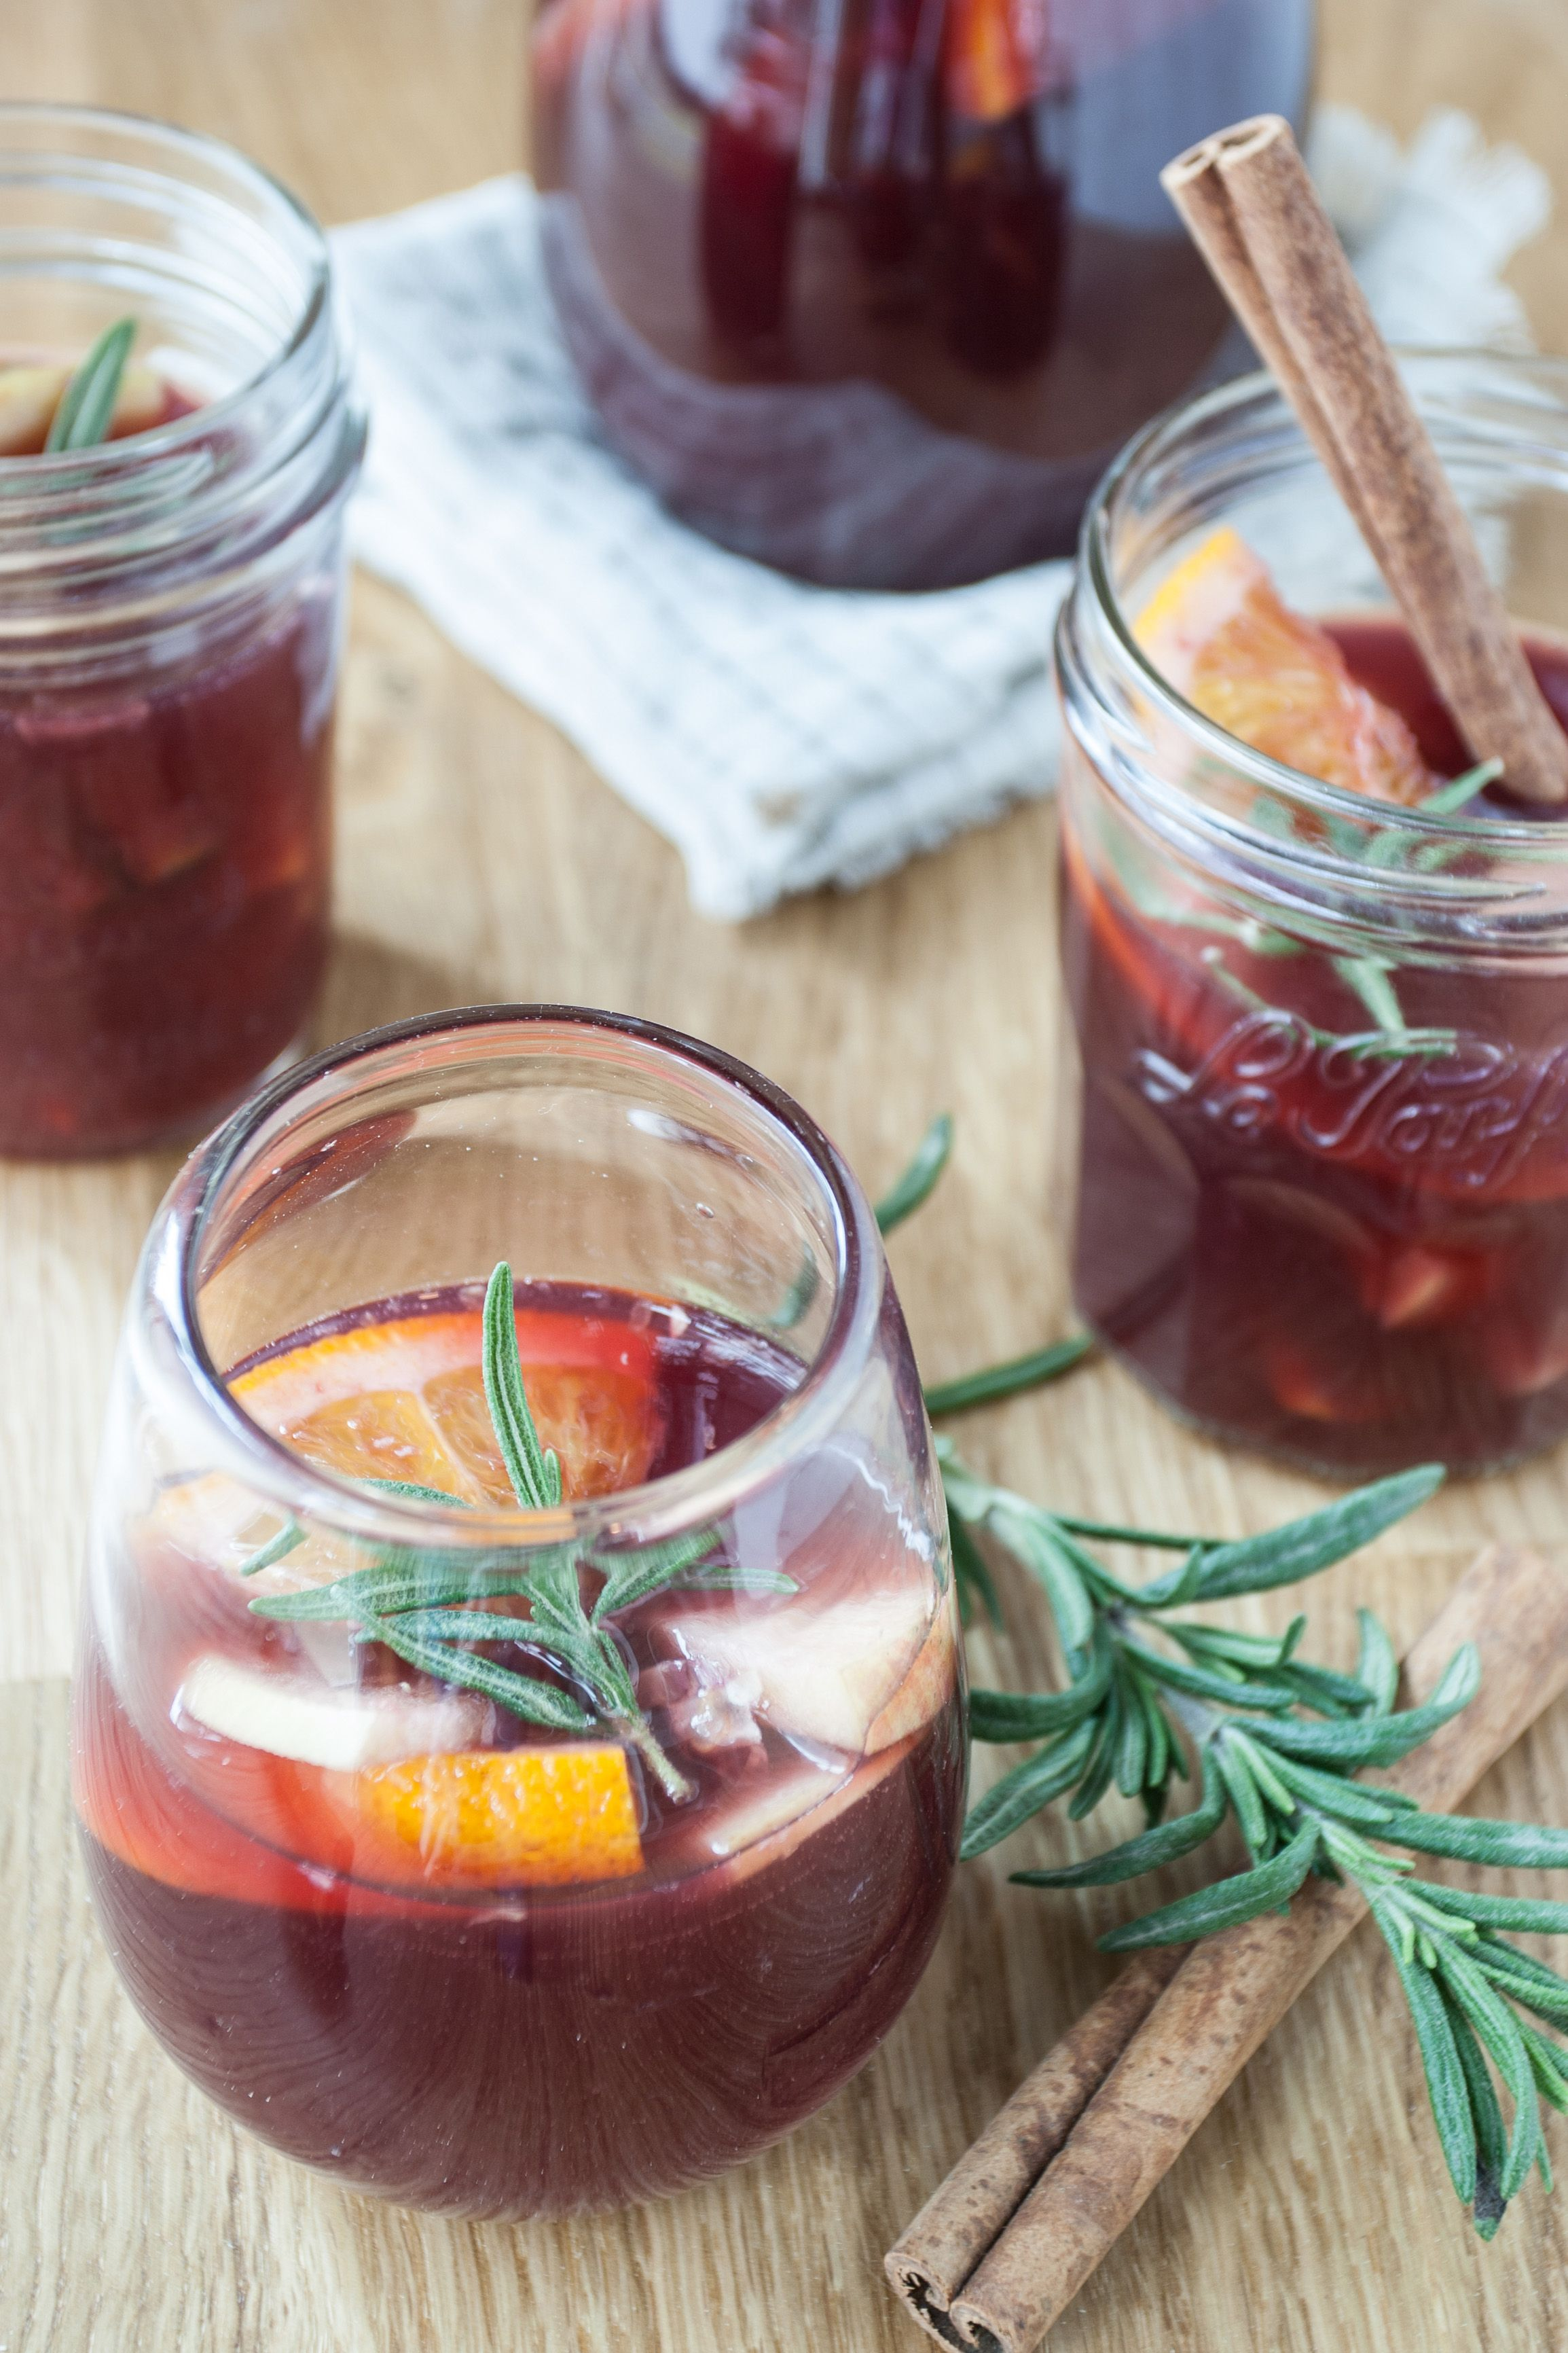 pics 4 Holiday Cocktail Recipes by Food Drink Bloggers To Sip This Season